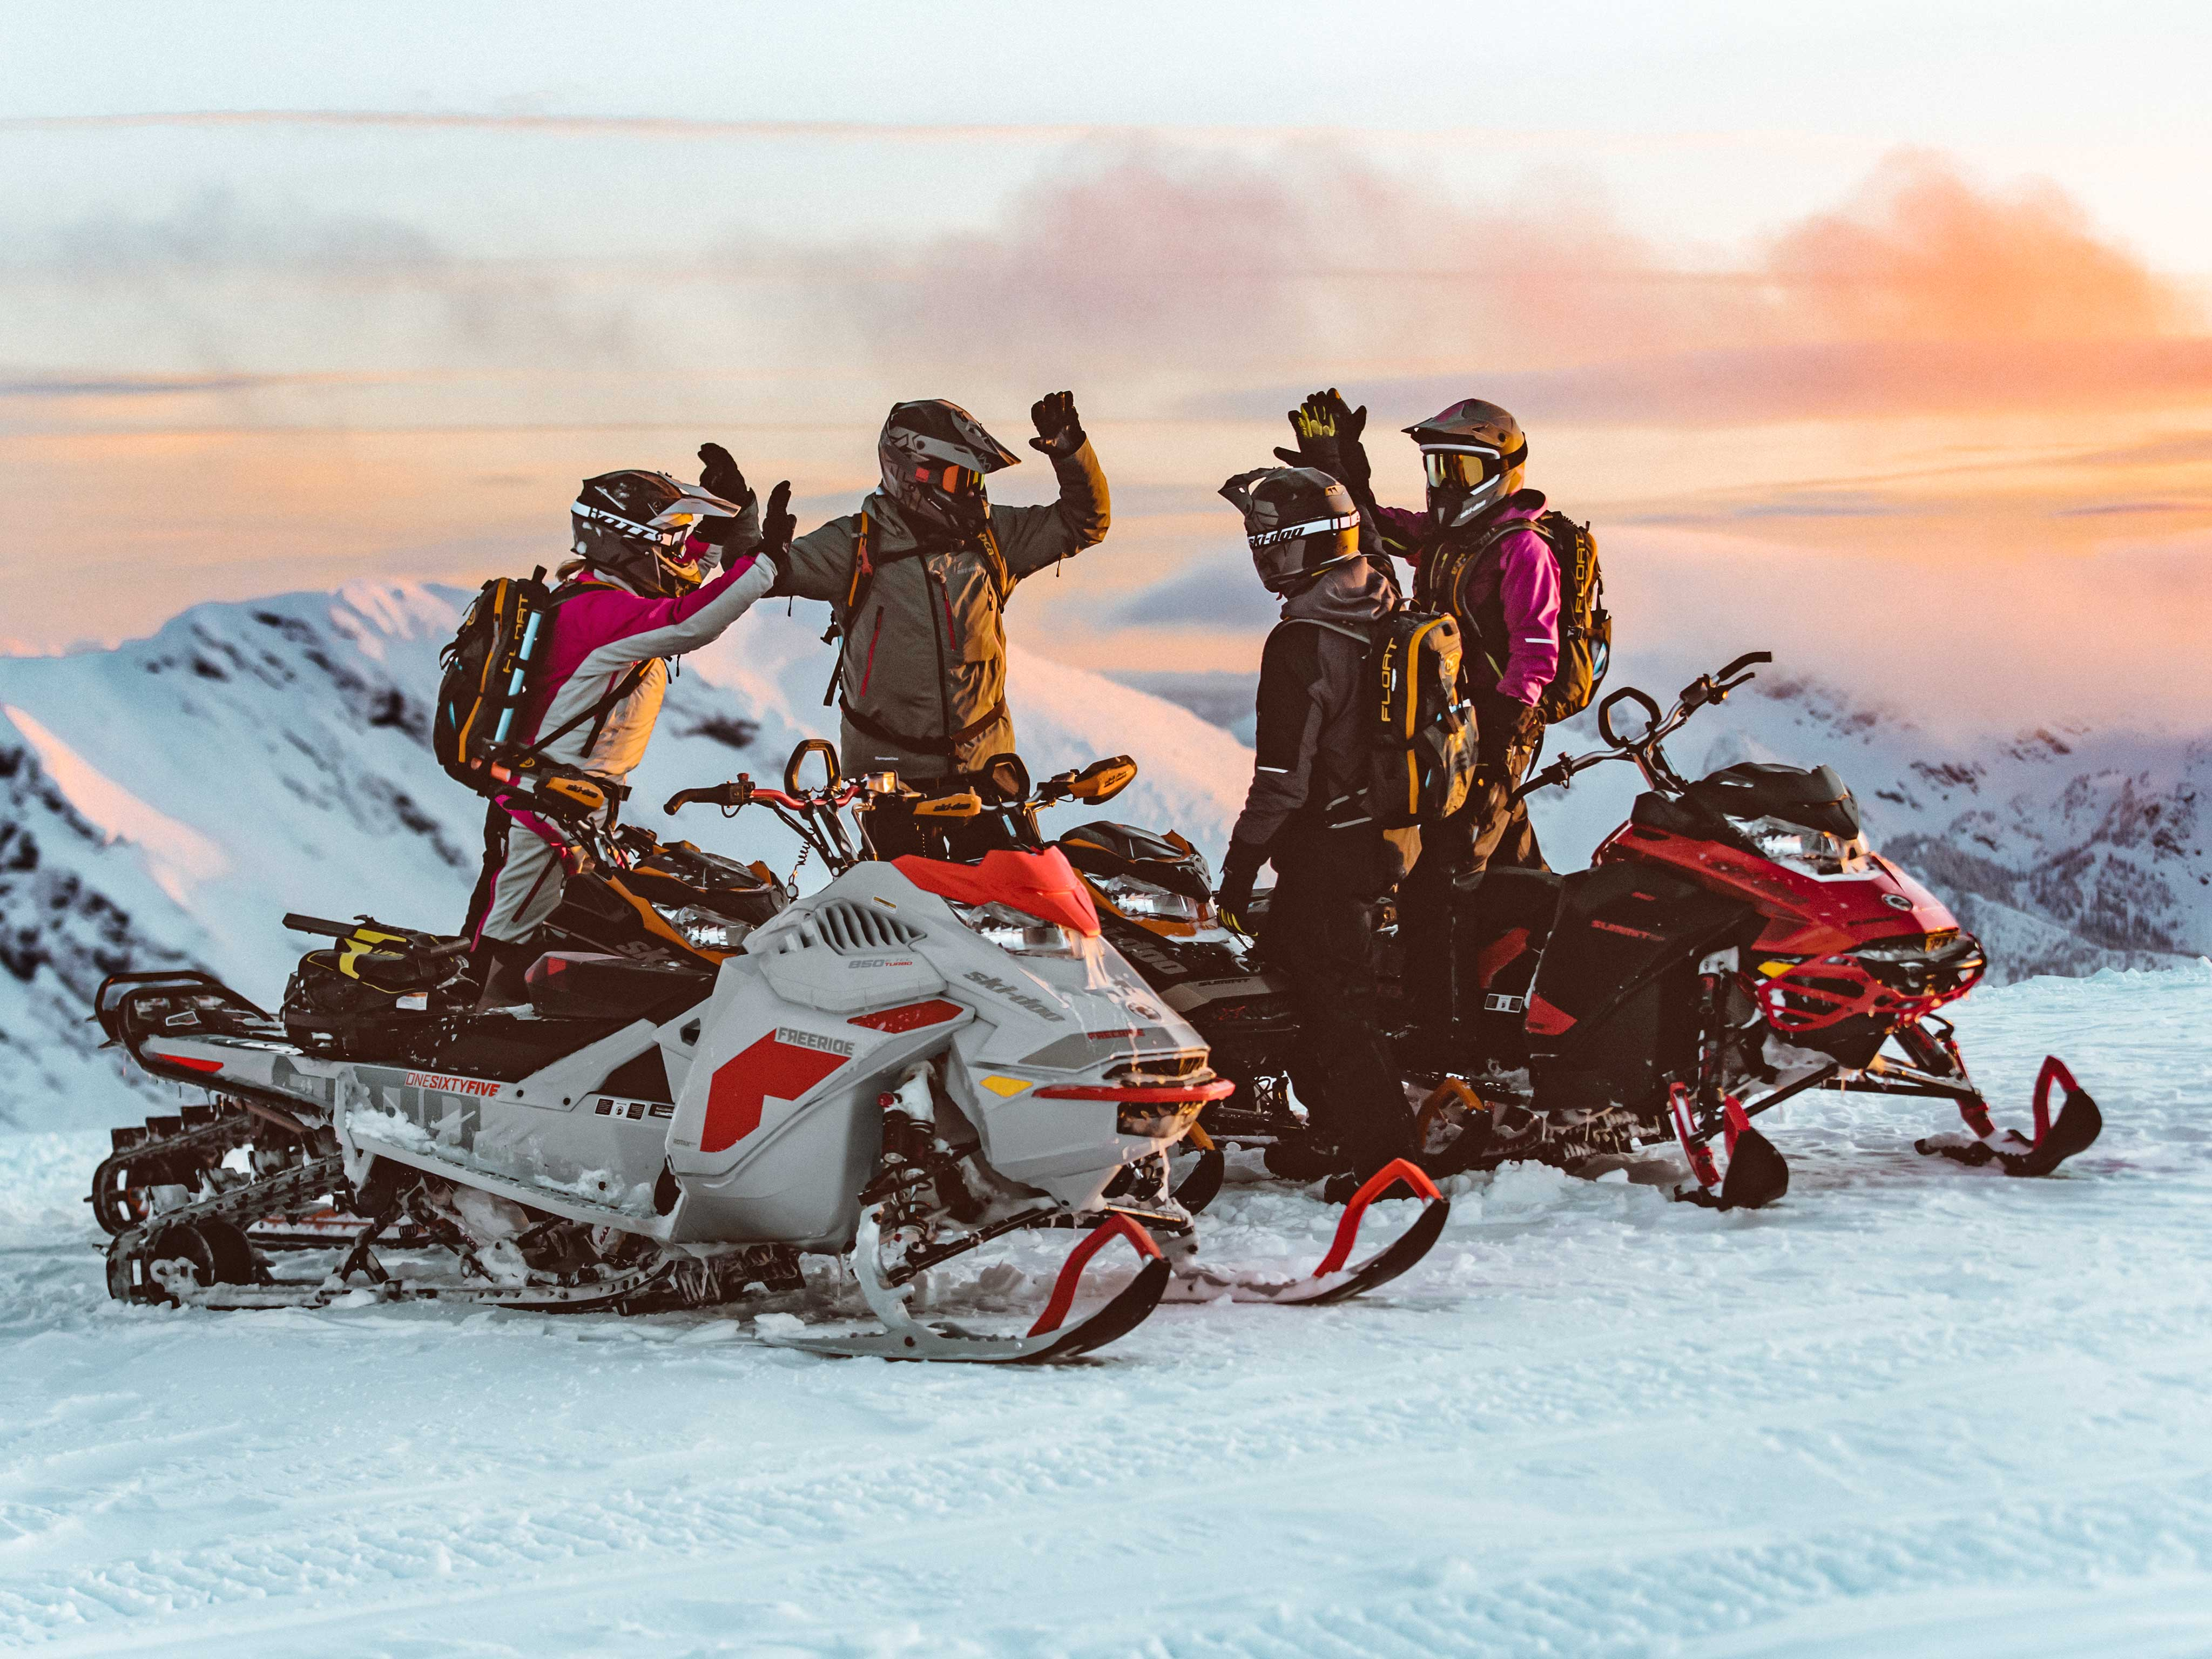 5 cool things About Ski-Doo